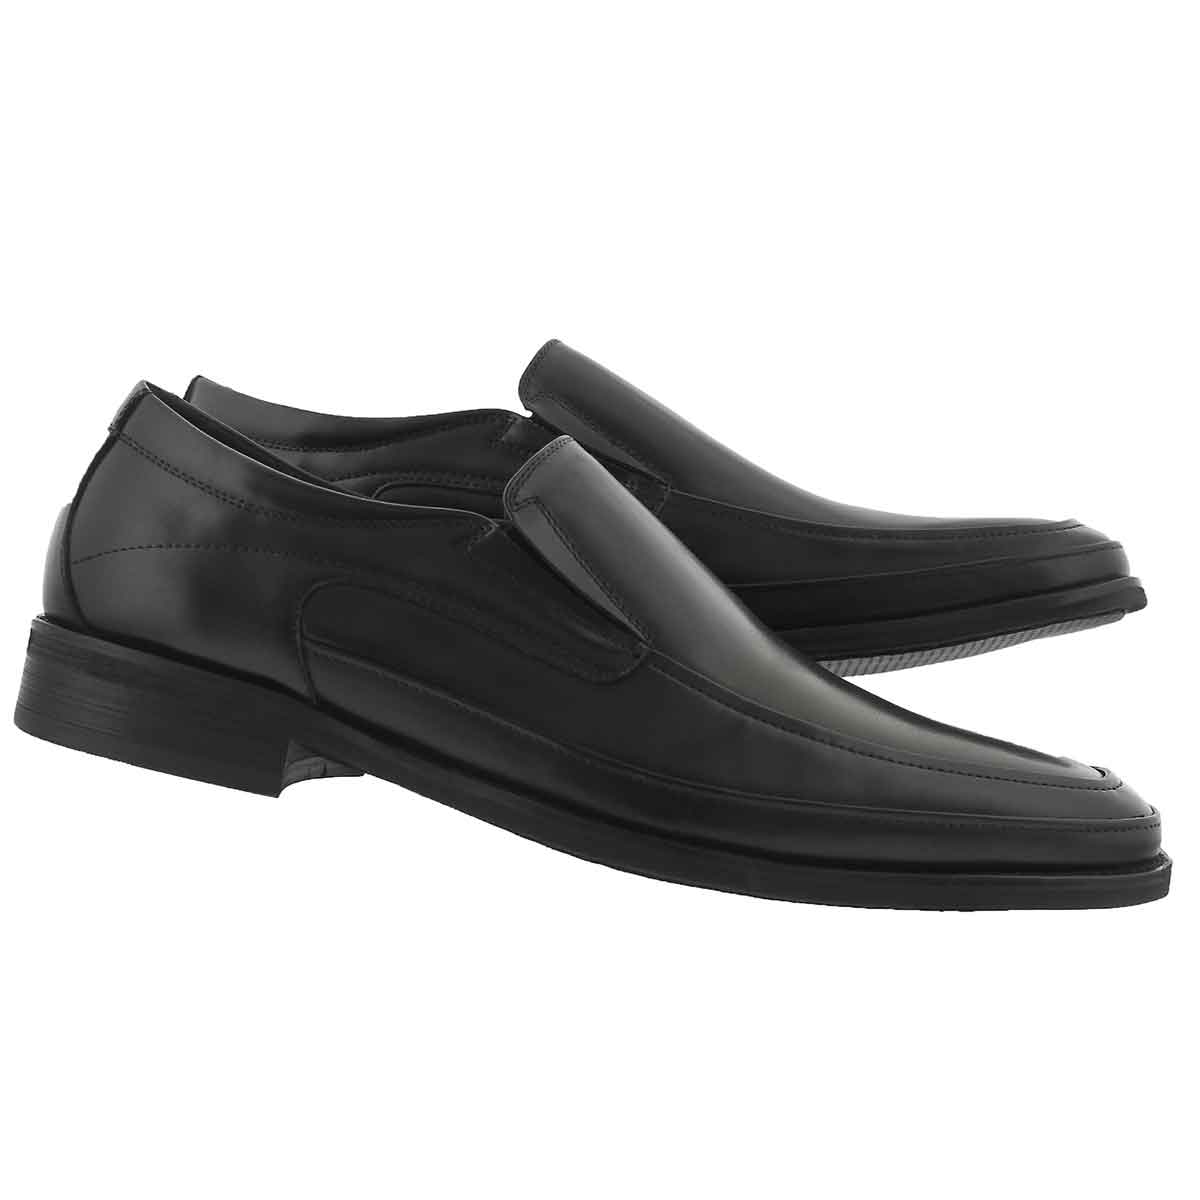 Mns Joseph black slip on dress shoe